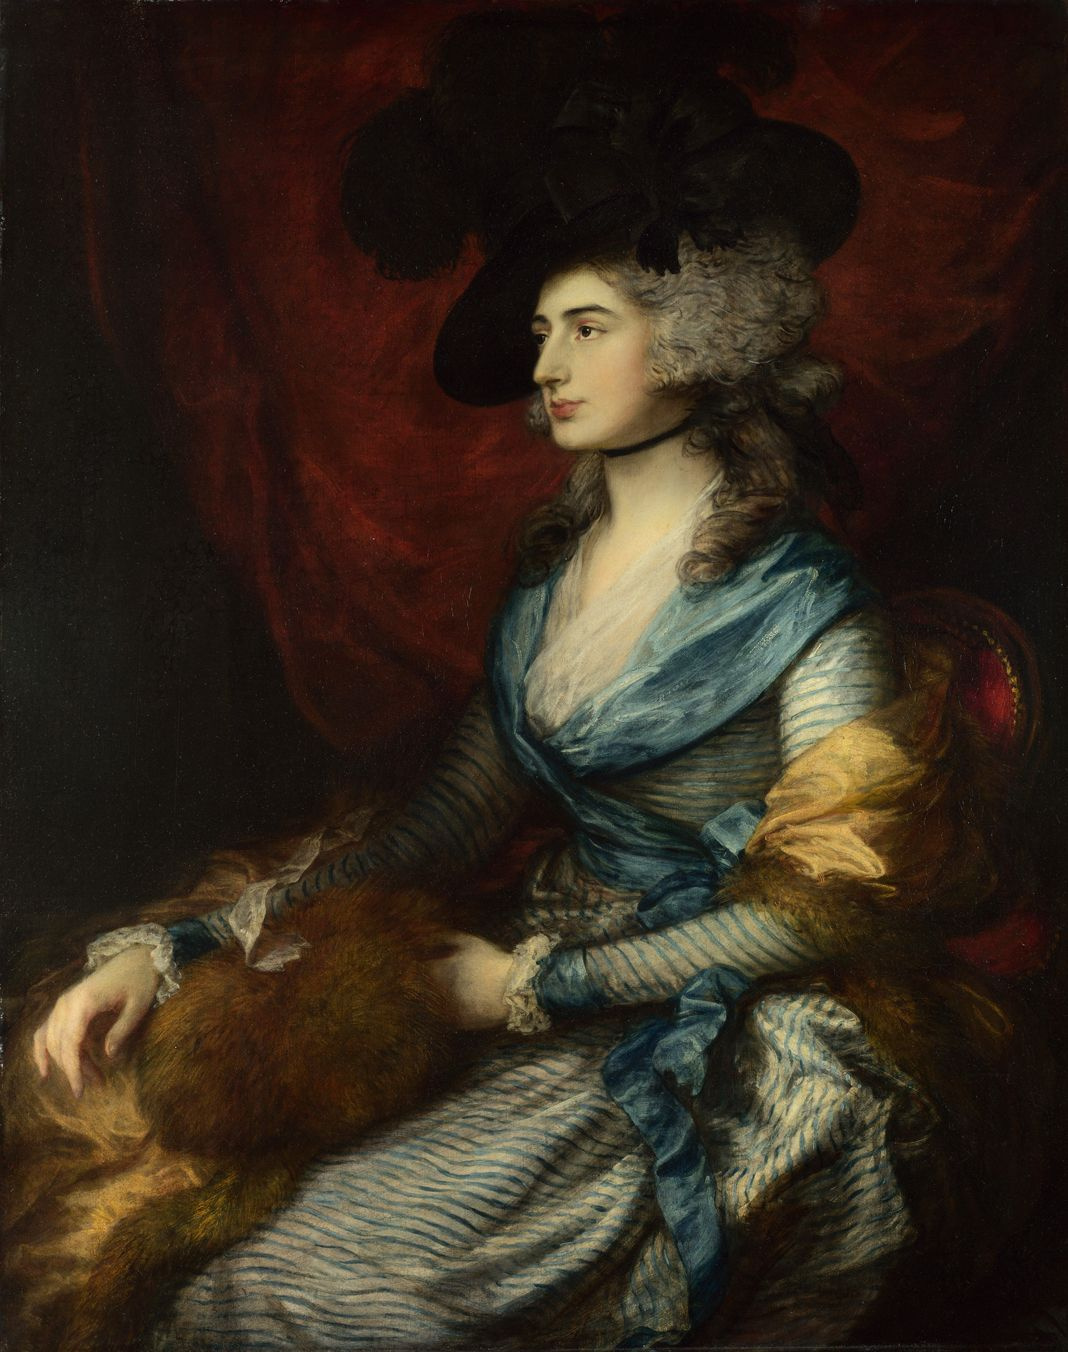 Thomas Gainsborough. Portrait of actress Sarah Siddons